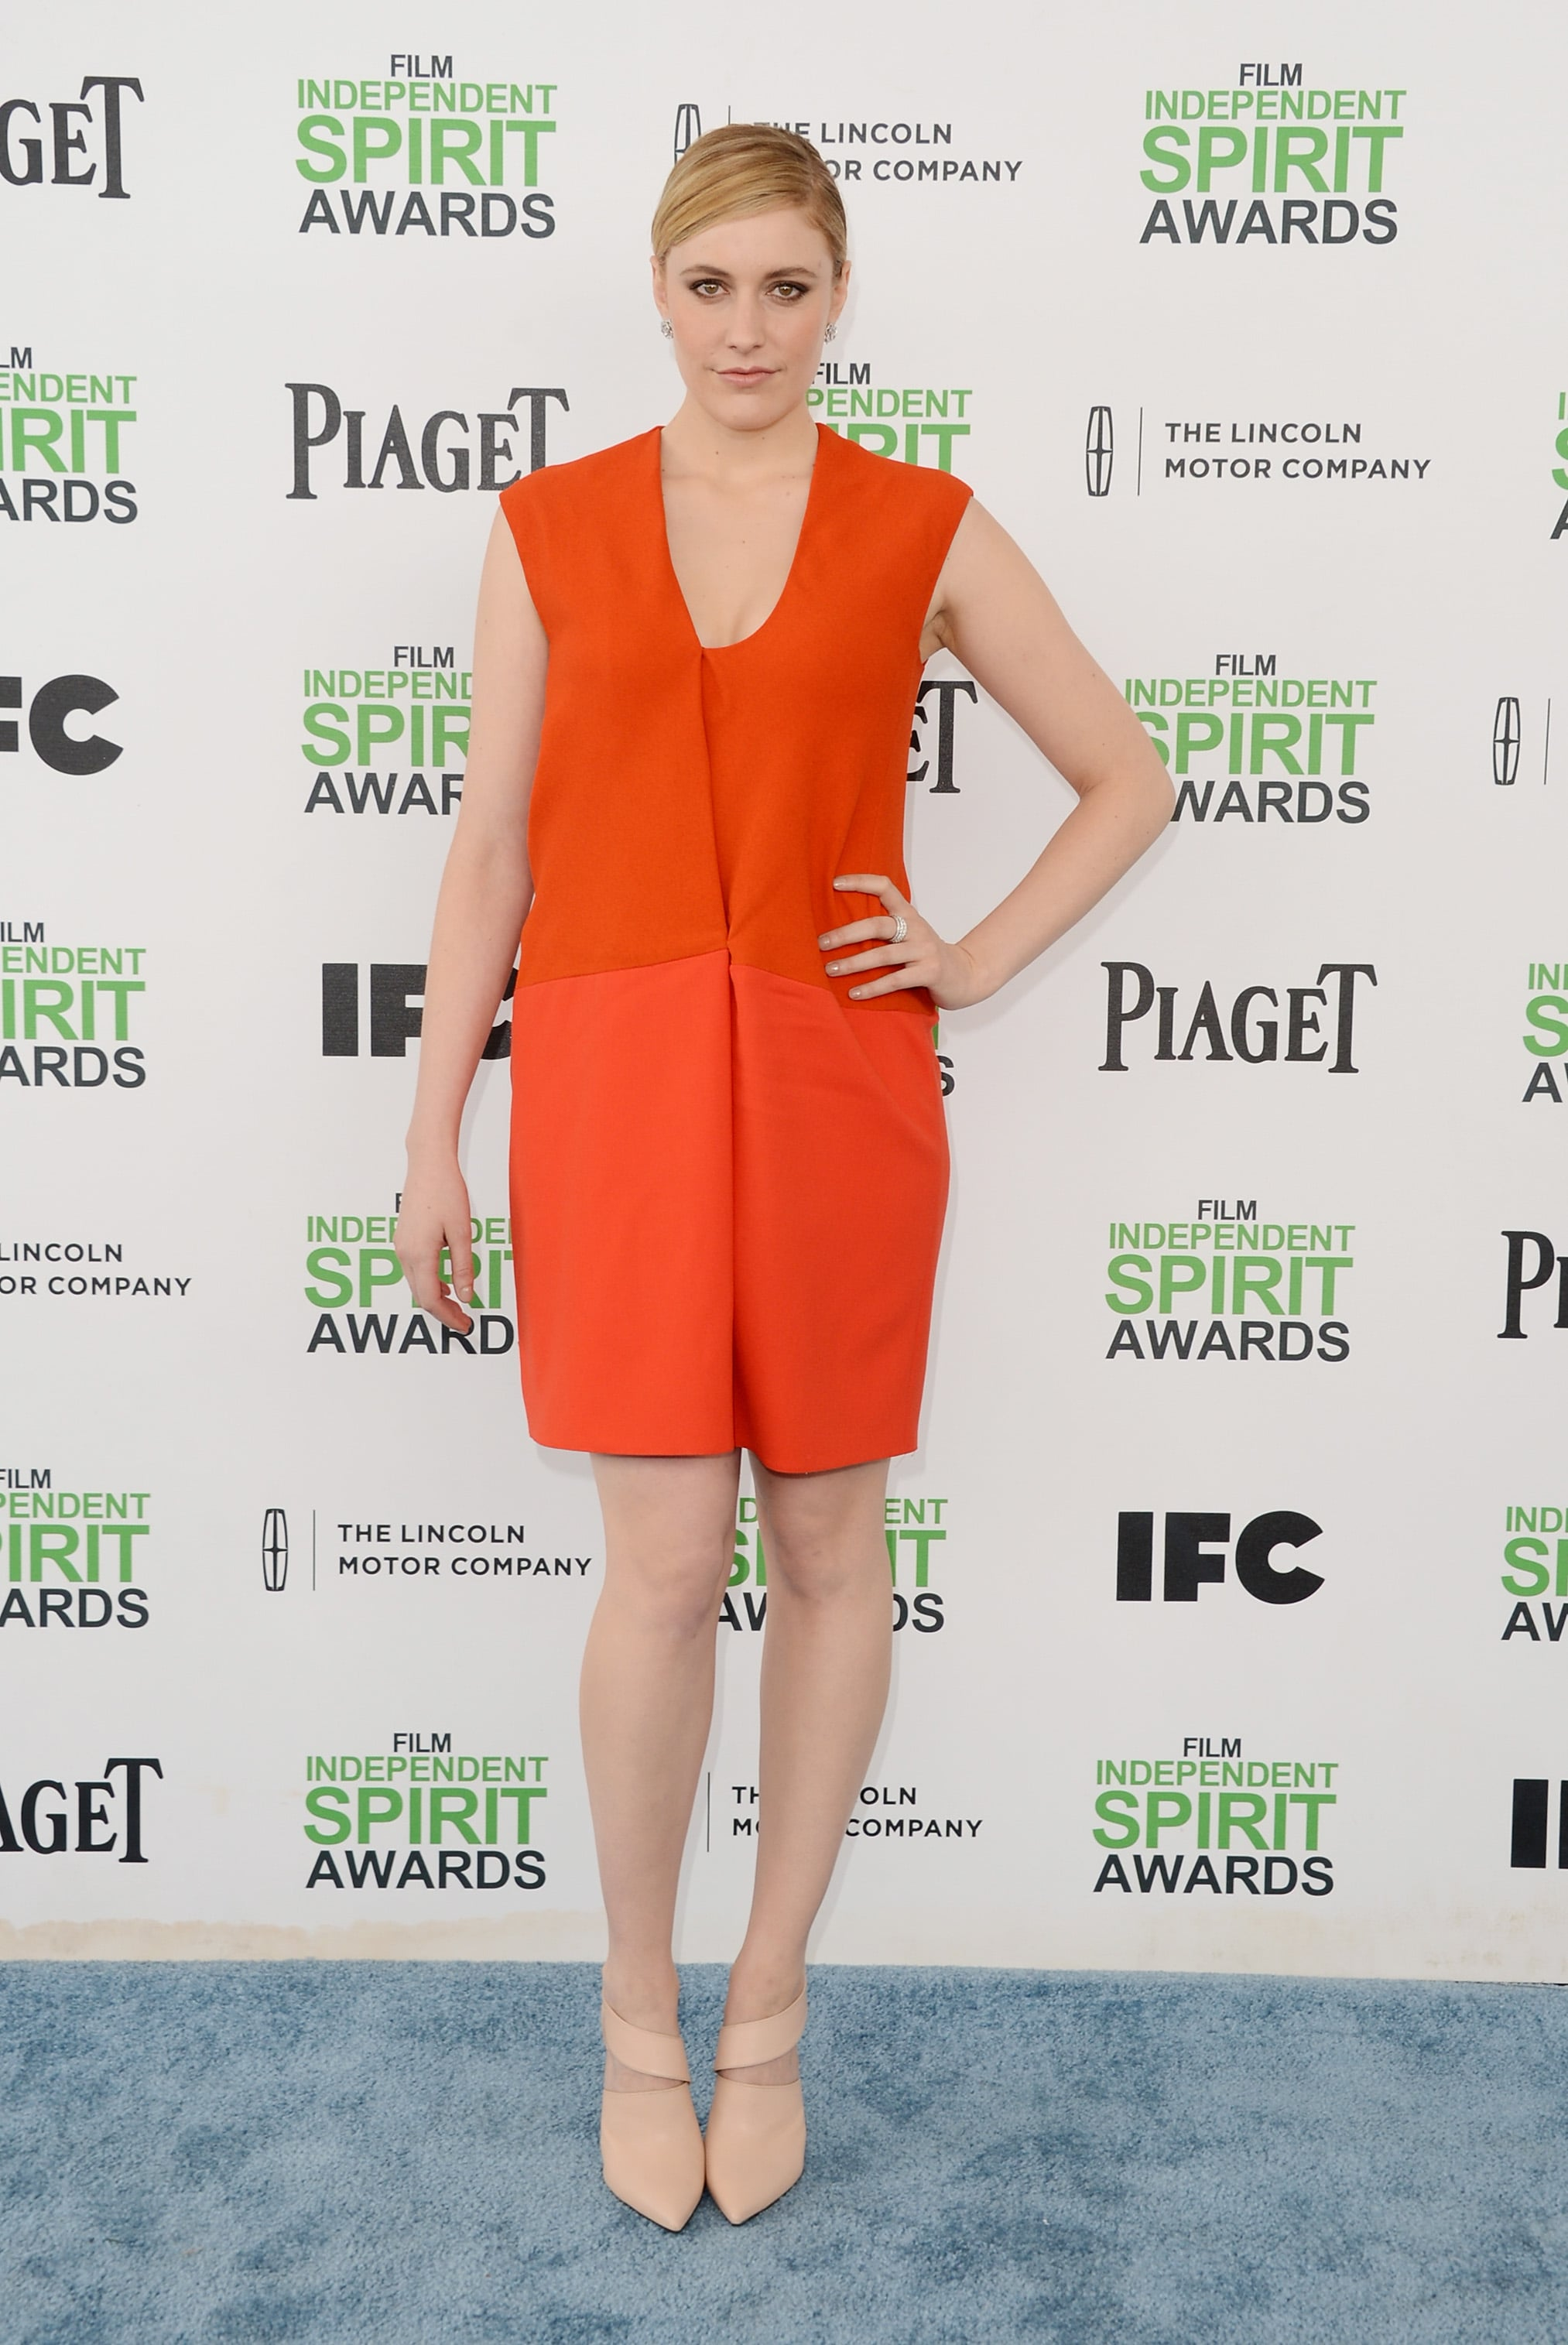 Greta Gerwig at the 2014 Spirit Awards